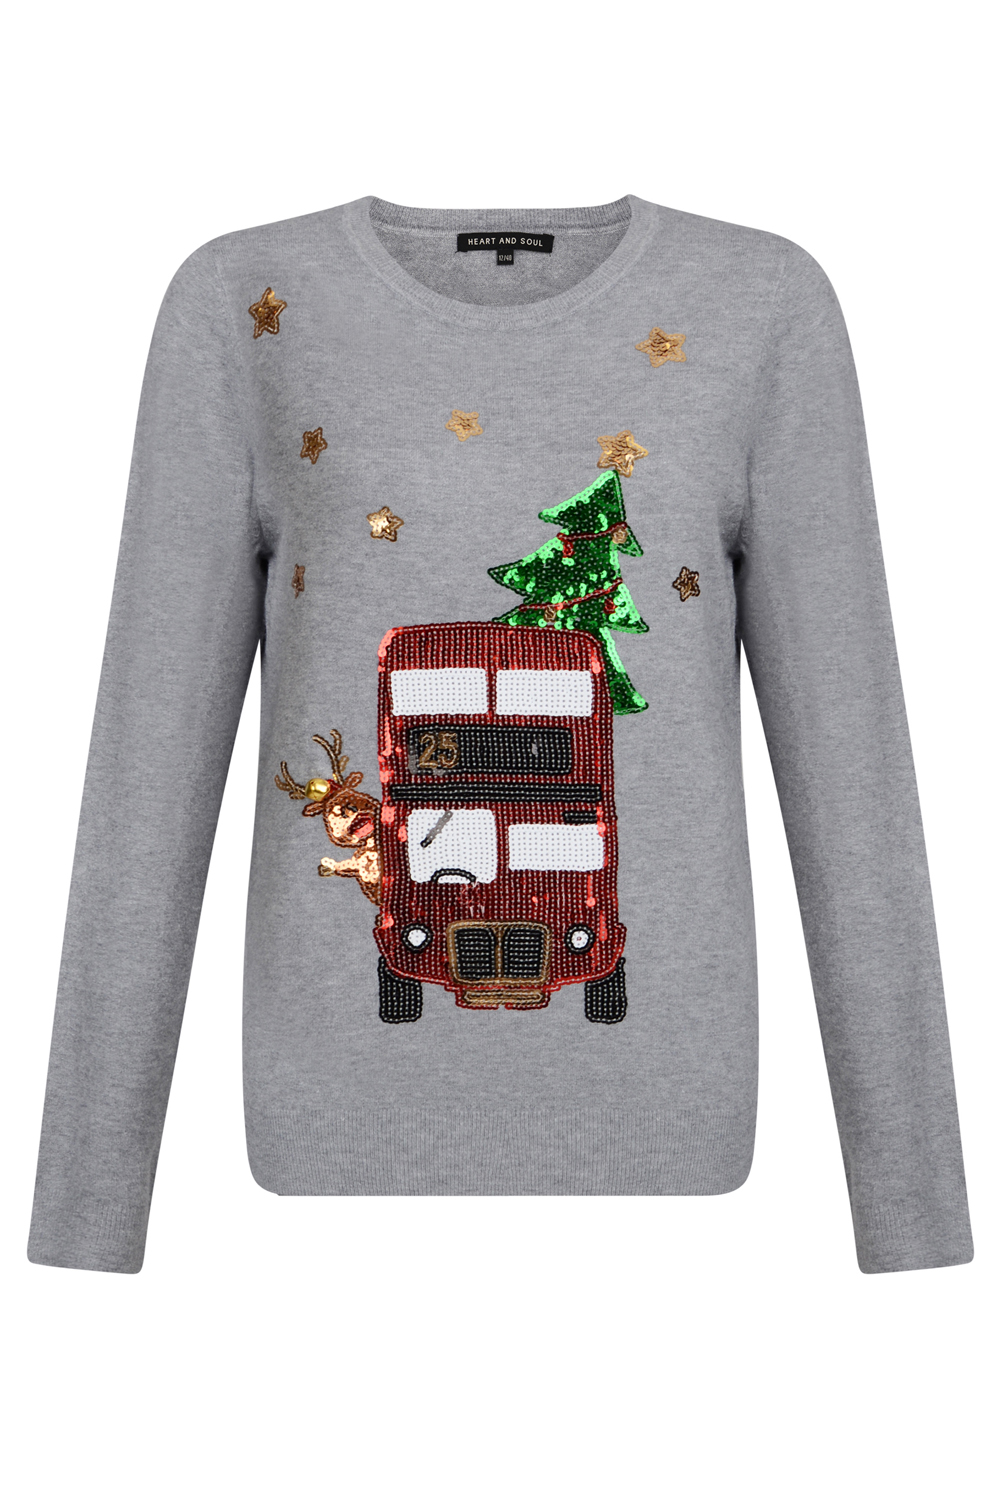 Heart And Soul Womens Sparkly Festive Bus Christmas Jumper